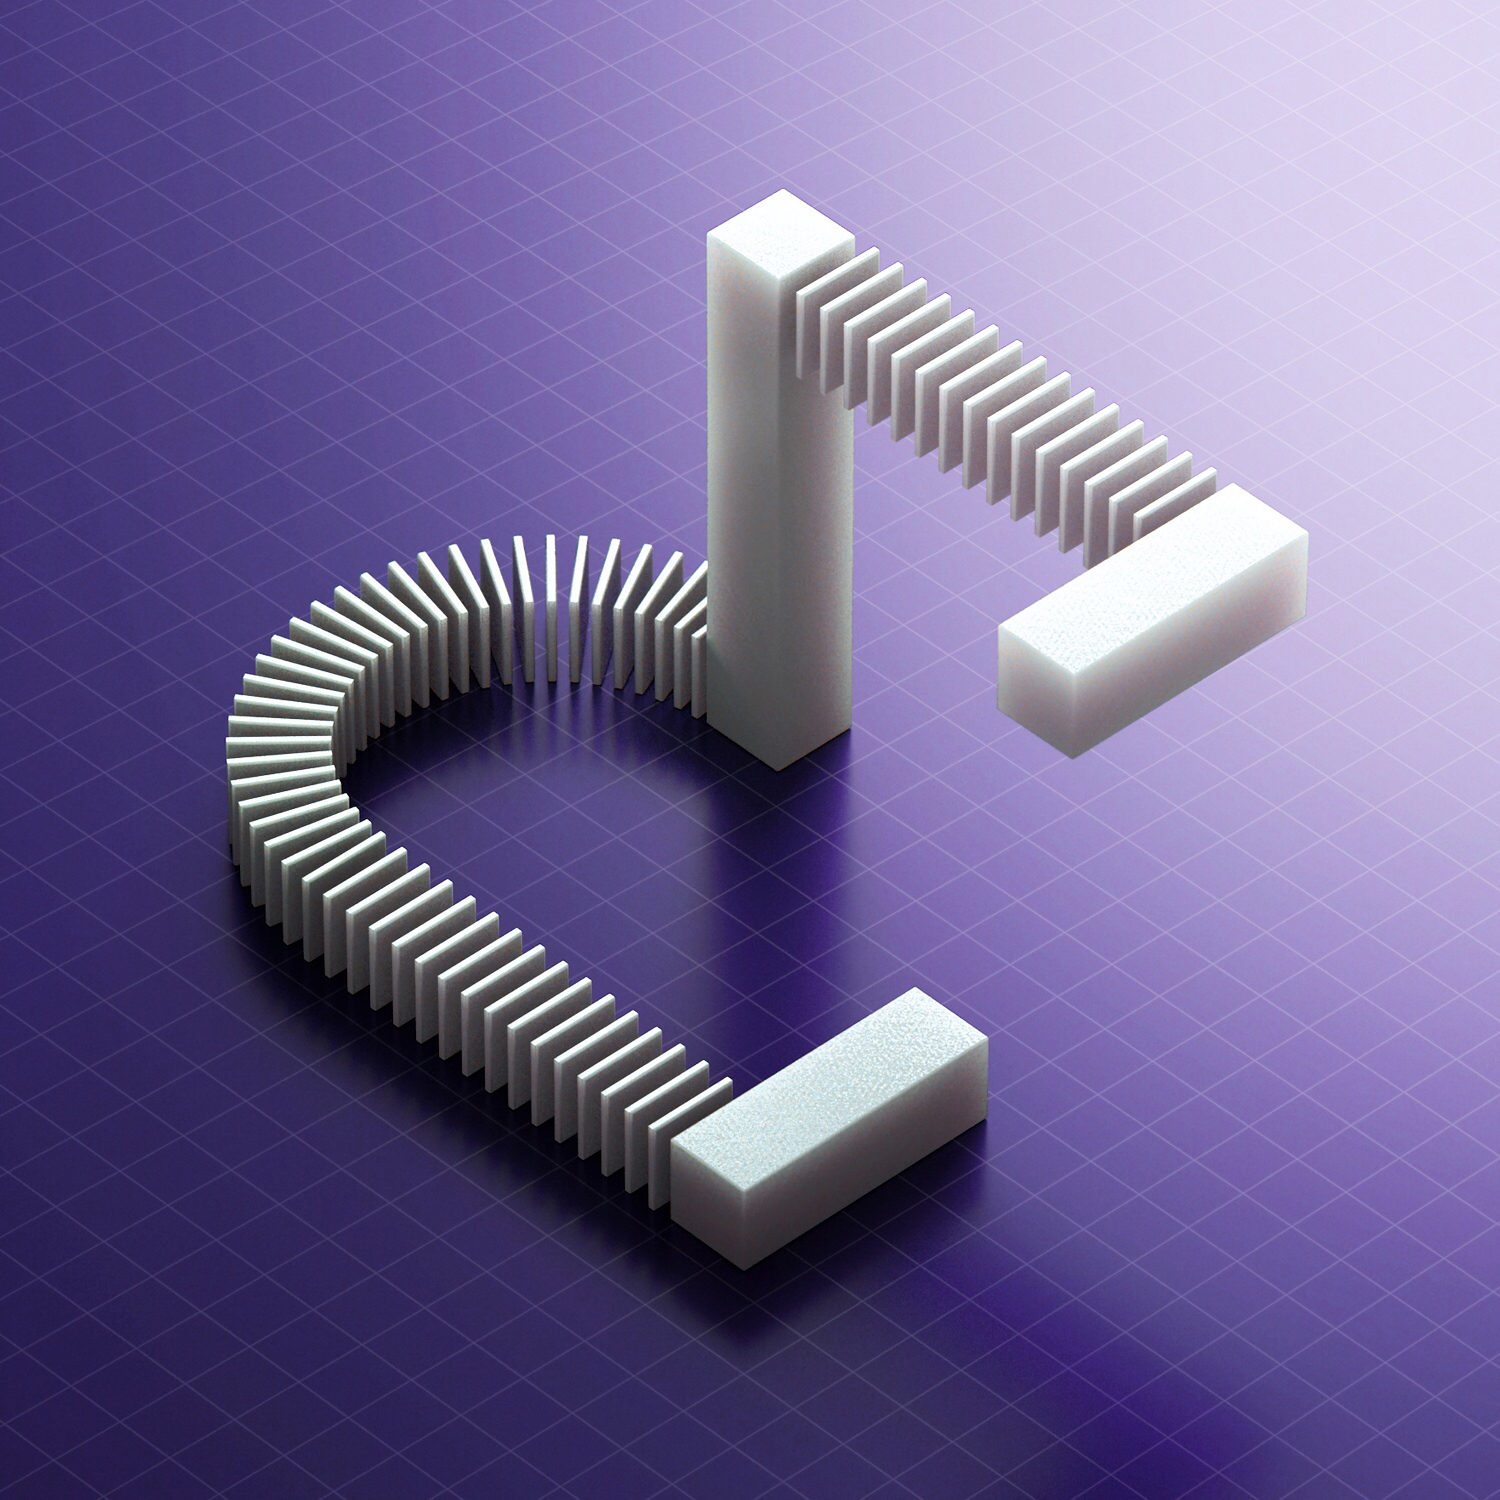 36 Days of Type 2018 - 3D letter E visual.